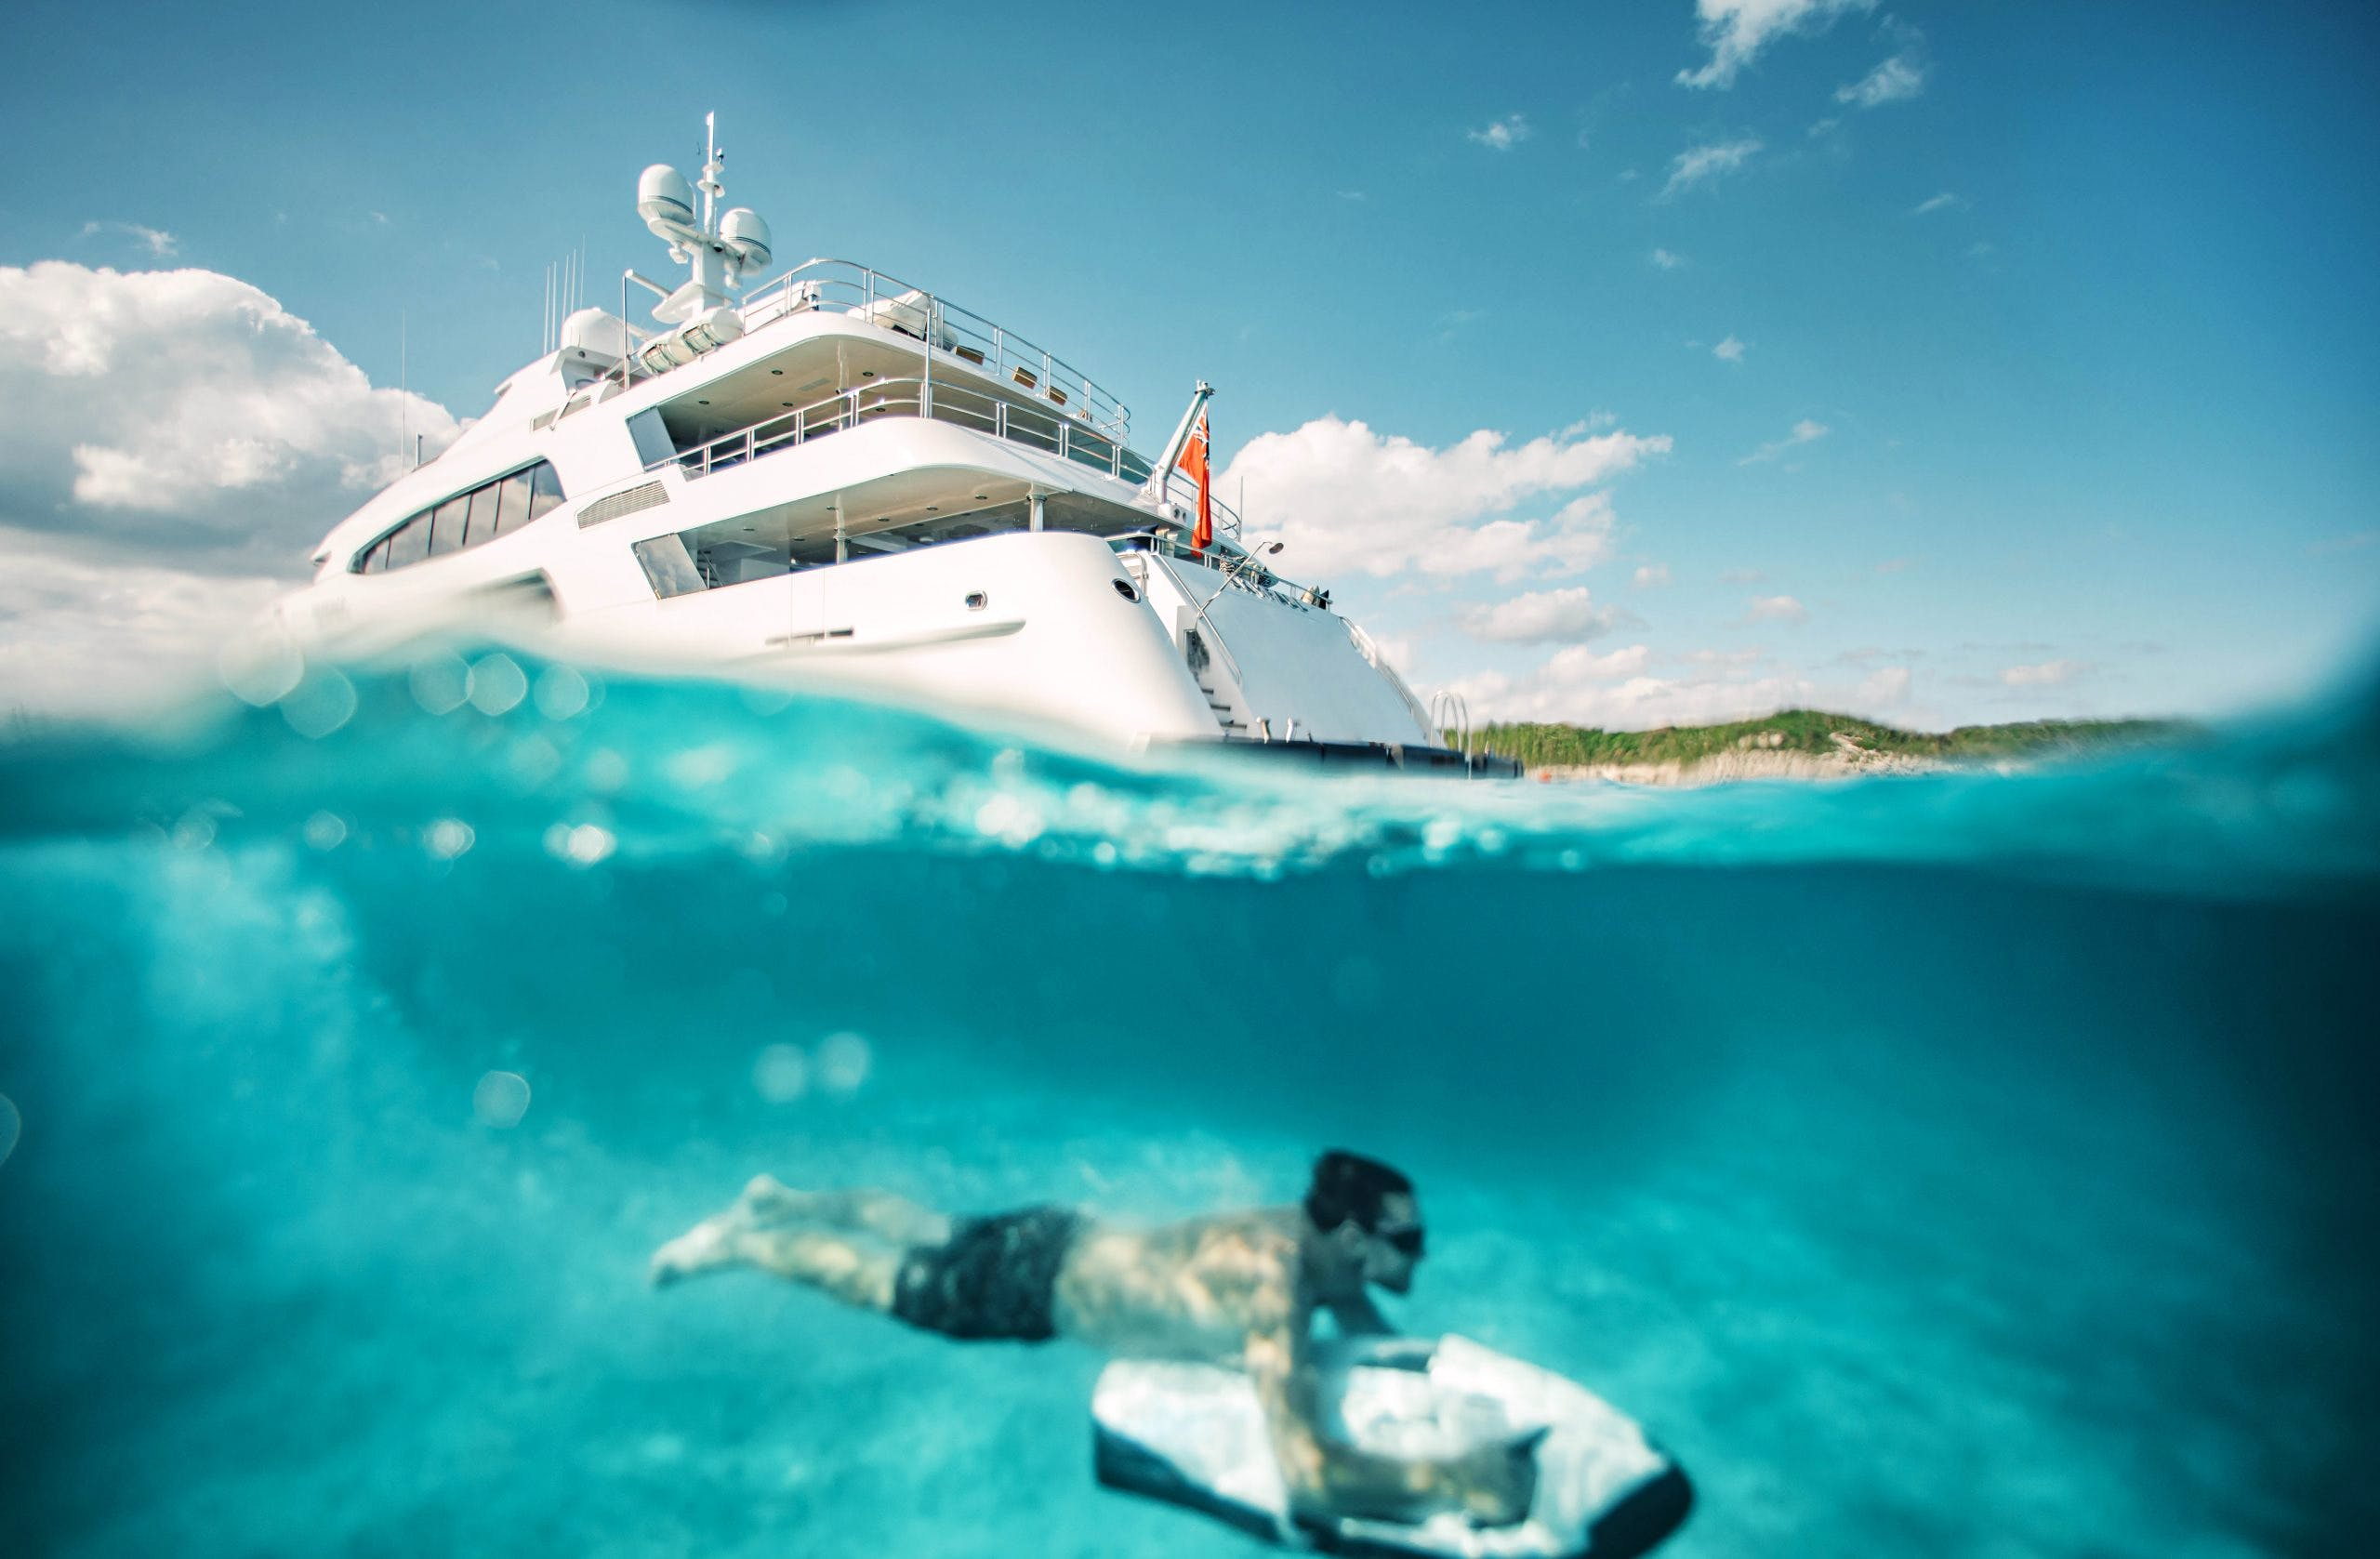 Guest diving under charter yacht SKYFALL with toy.